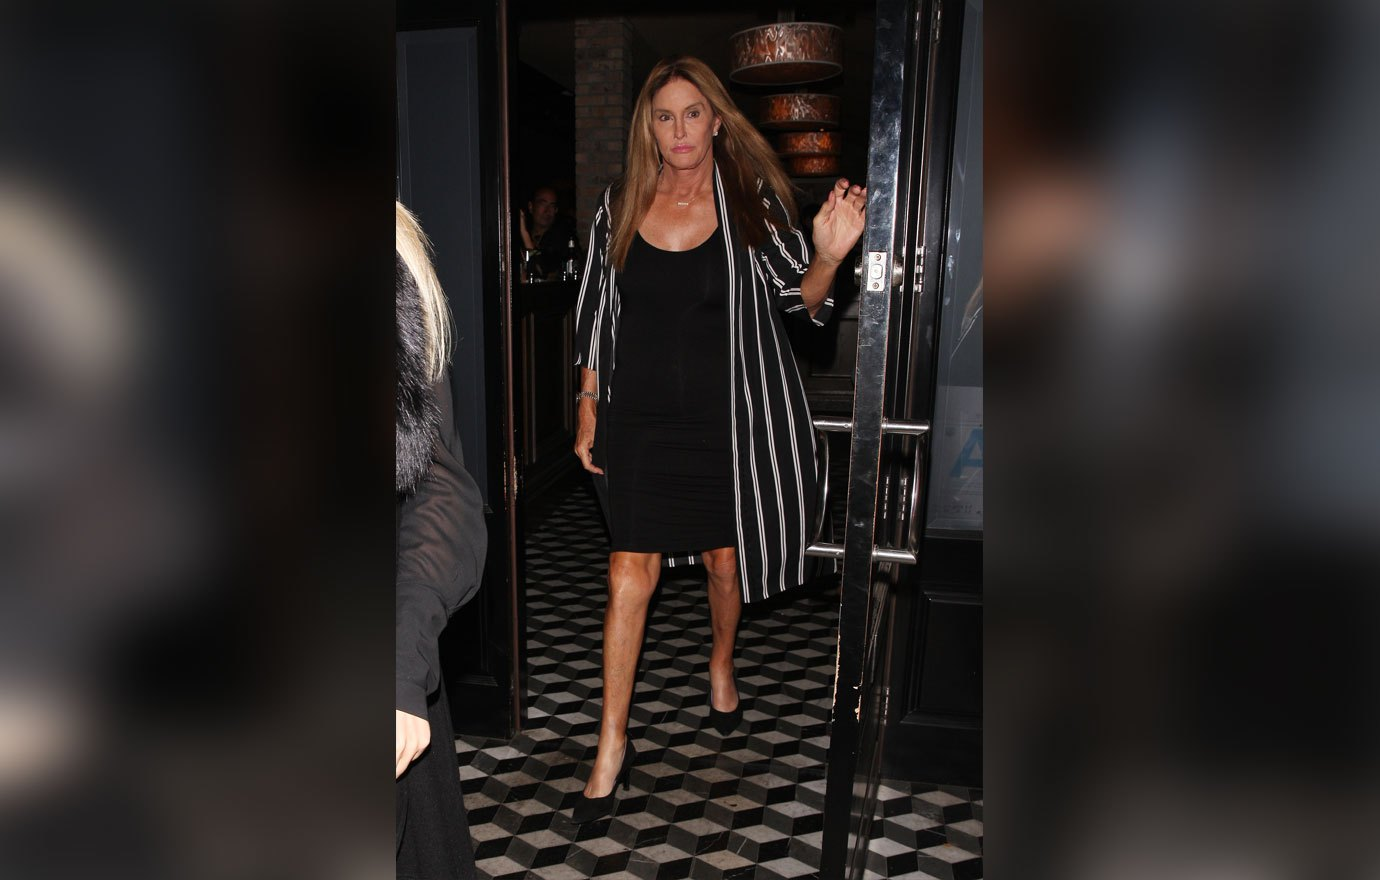 Caitlyn Jenner and rumored girlfriend Sophia Hutchins are spotted leaving Craig's Eatery after having dinner in West Hollywood. 23 Aug 2018 Pictured: Caitlyn Jenner And Sophia Hutchins. Photo credit: MEGA TheMegaAgency.com +1 888 505 6342 (Mega Agency TagID: MEGA266042_001.jpg) [Photo via Mega Agency]